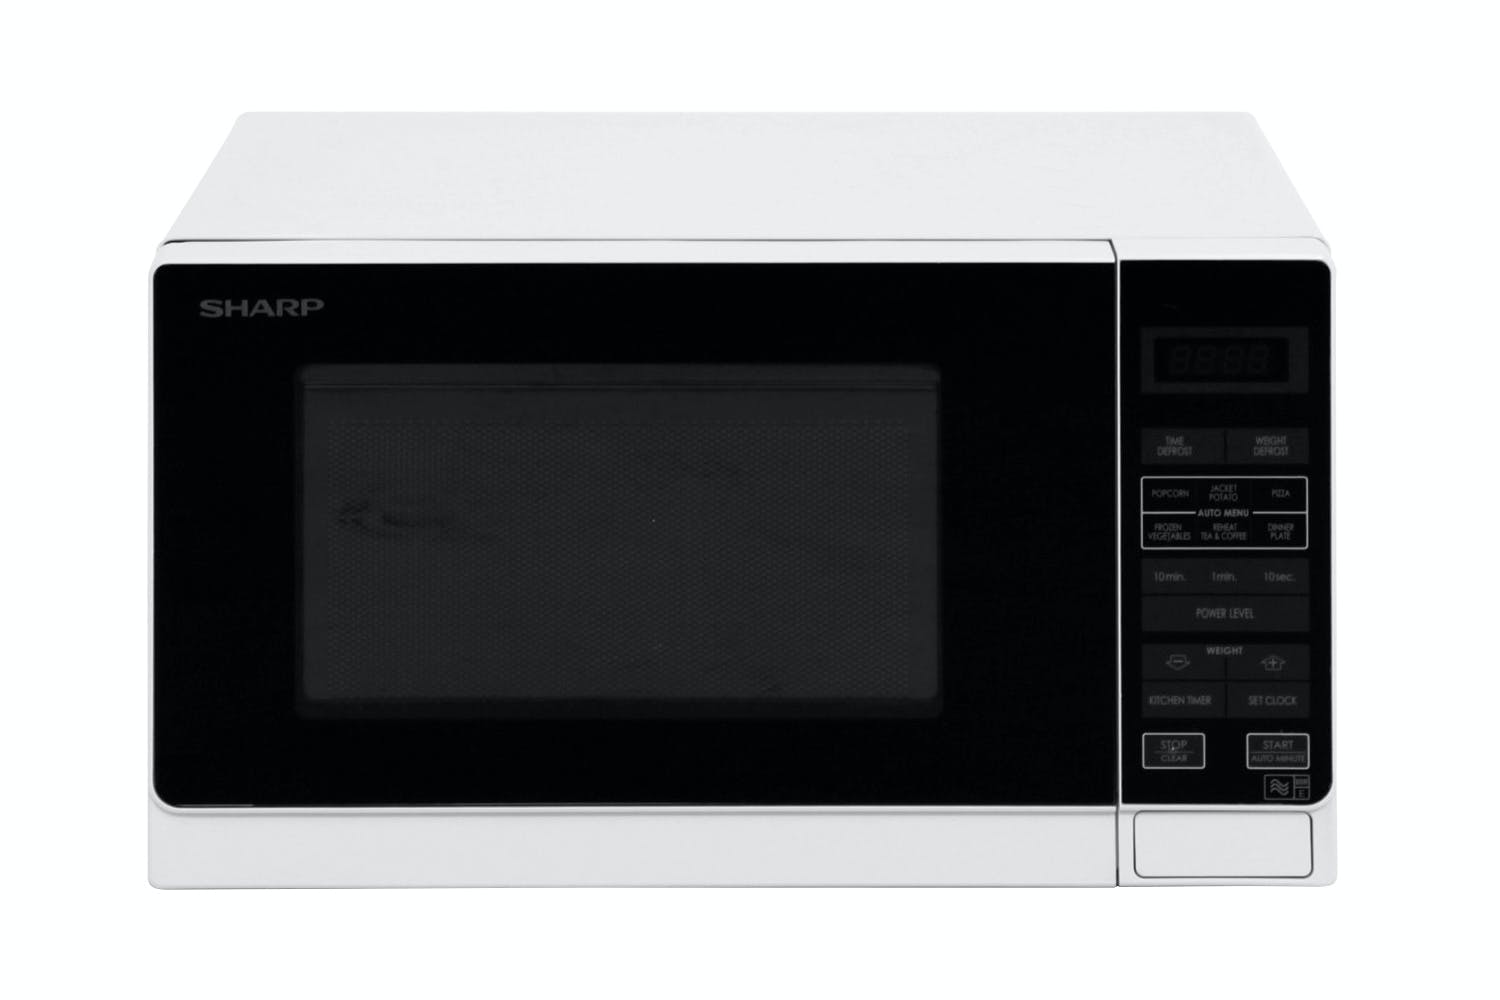 Small Countertop Microwave Dimensions : Sharp Compact Size Microwave Oven Harvey Norman New Zealand